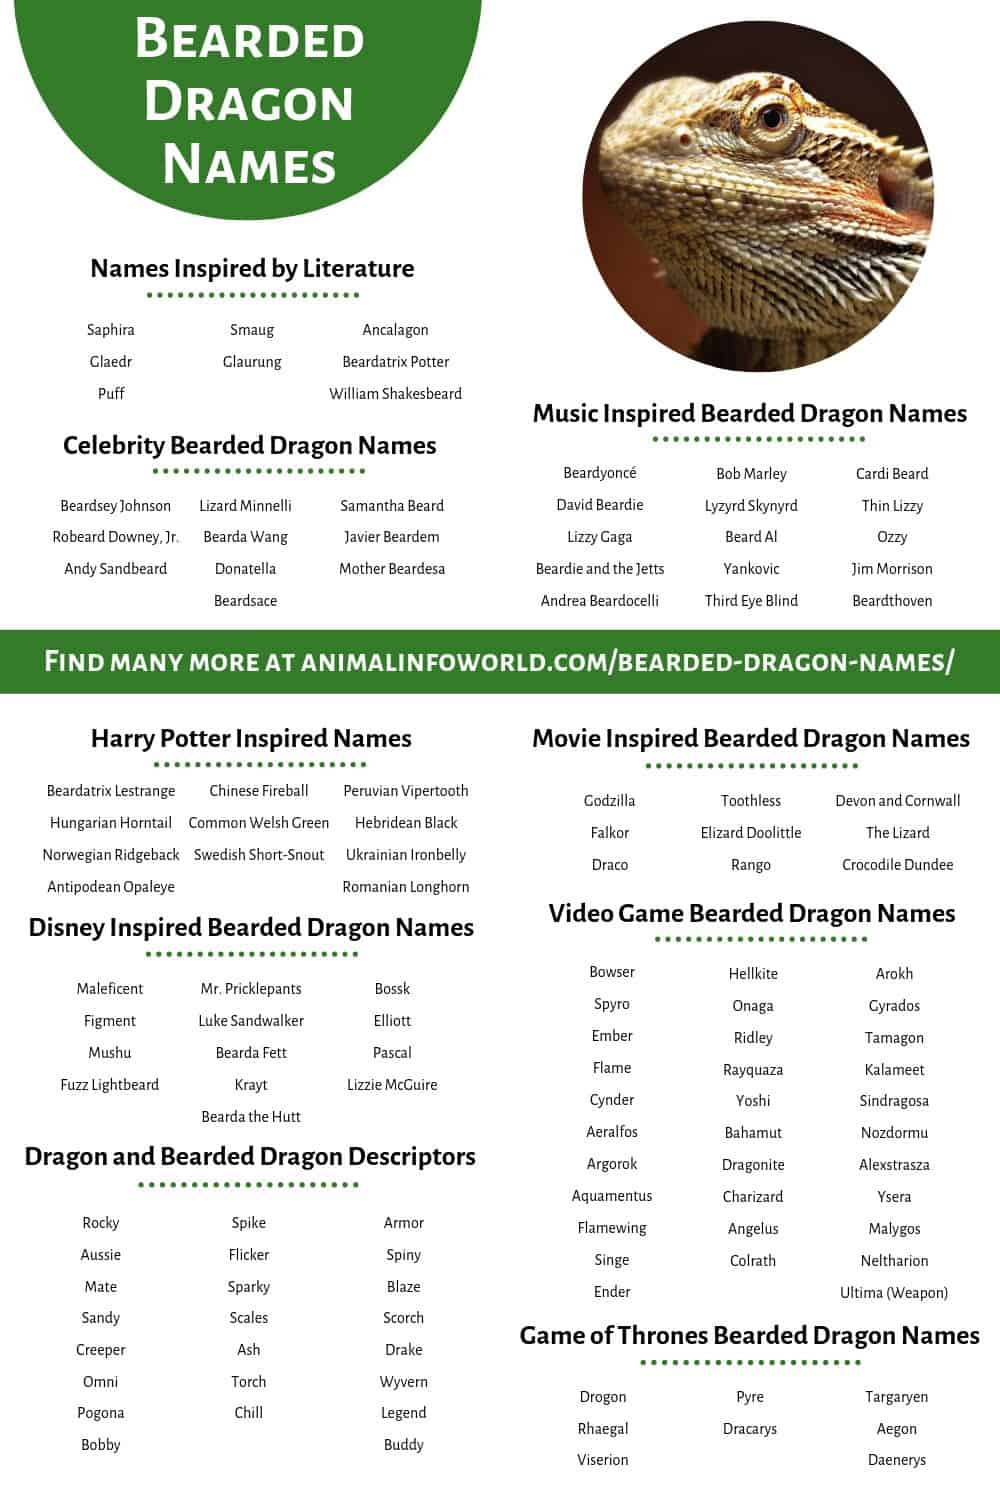 200 Bearded Dragon Names - The only list you'll need